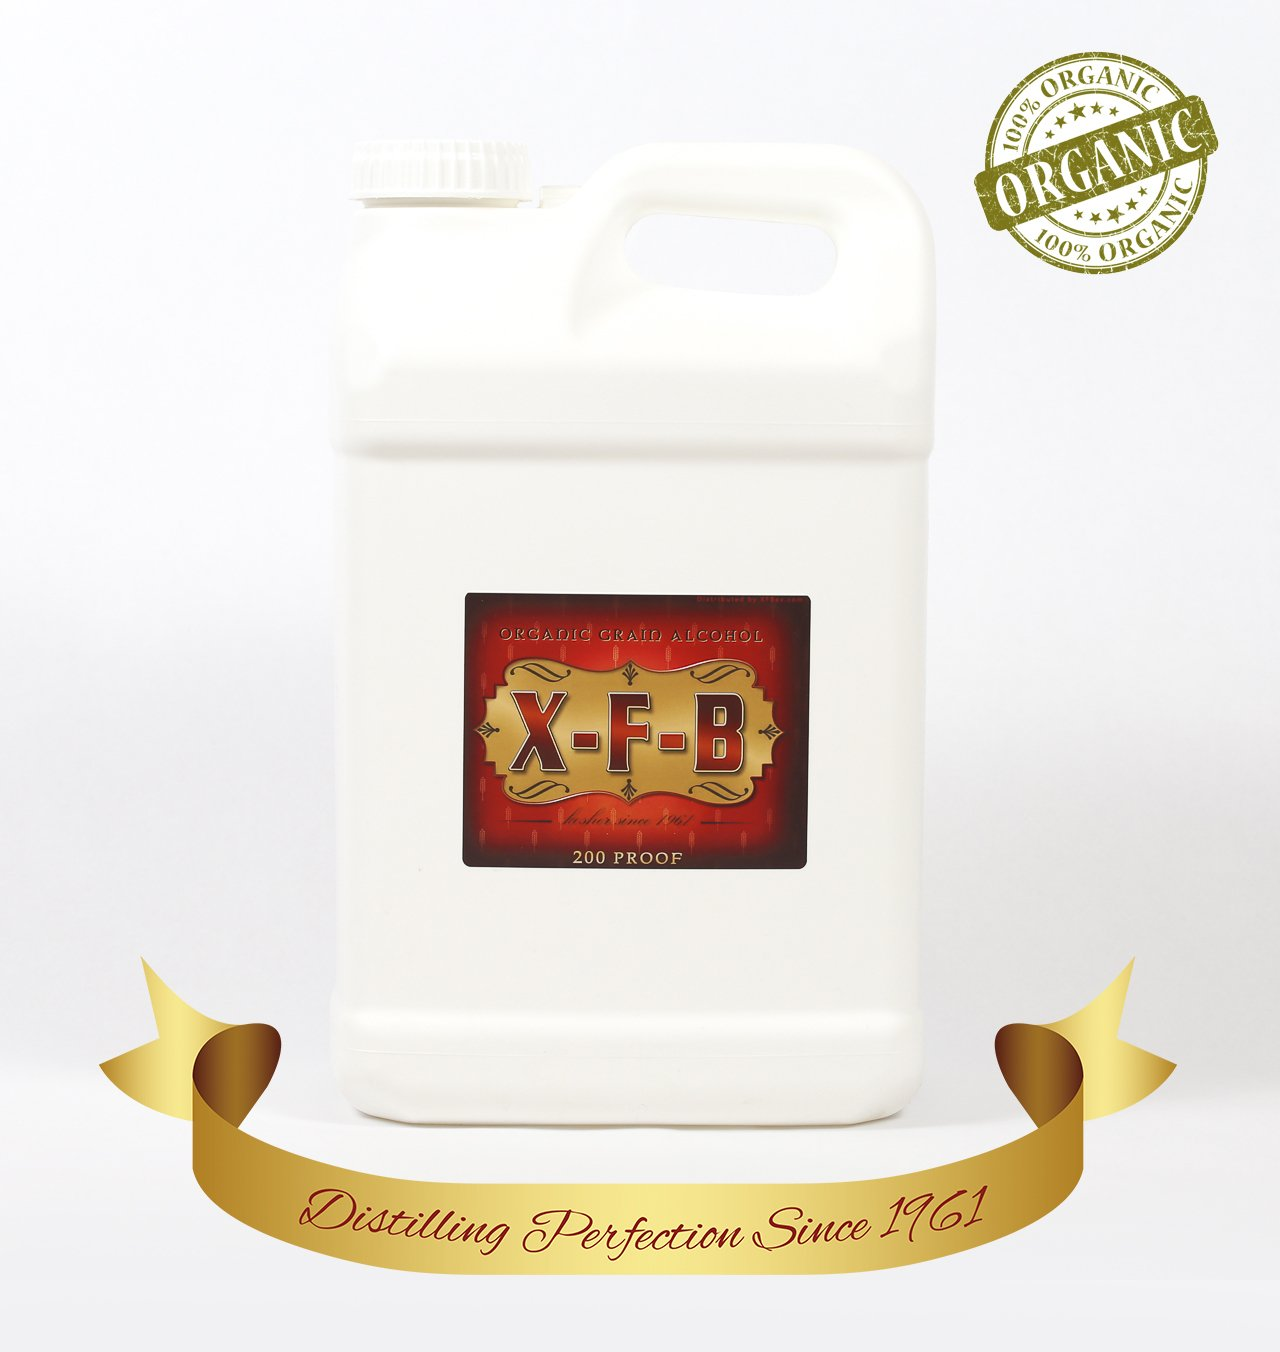 2.5 Gallon 200 Proof EOX by X-F-B Proof EOX from X-F-B Always Pure - Never DENATURED - PHARMA Grade & 100% Organic. JUST Ask Anyone They'll Tell You IT'S The PUREST - Plus Free 8 OZ Bonus Bottle